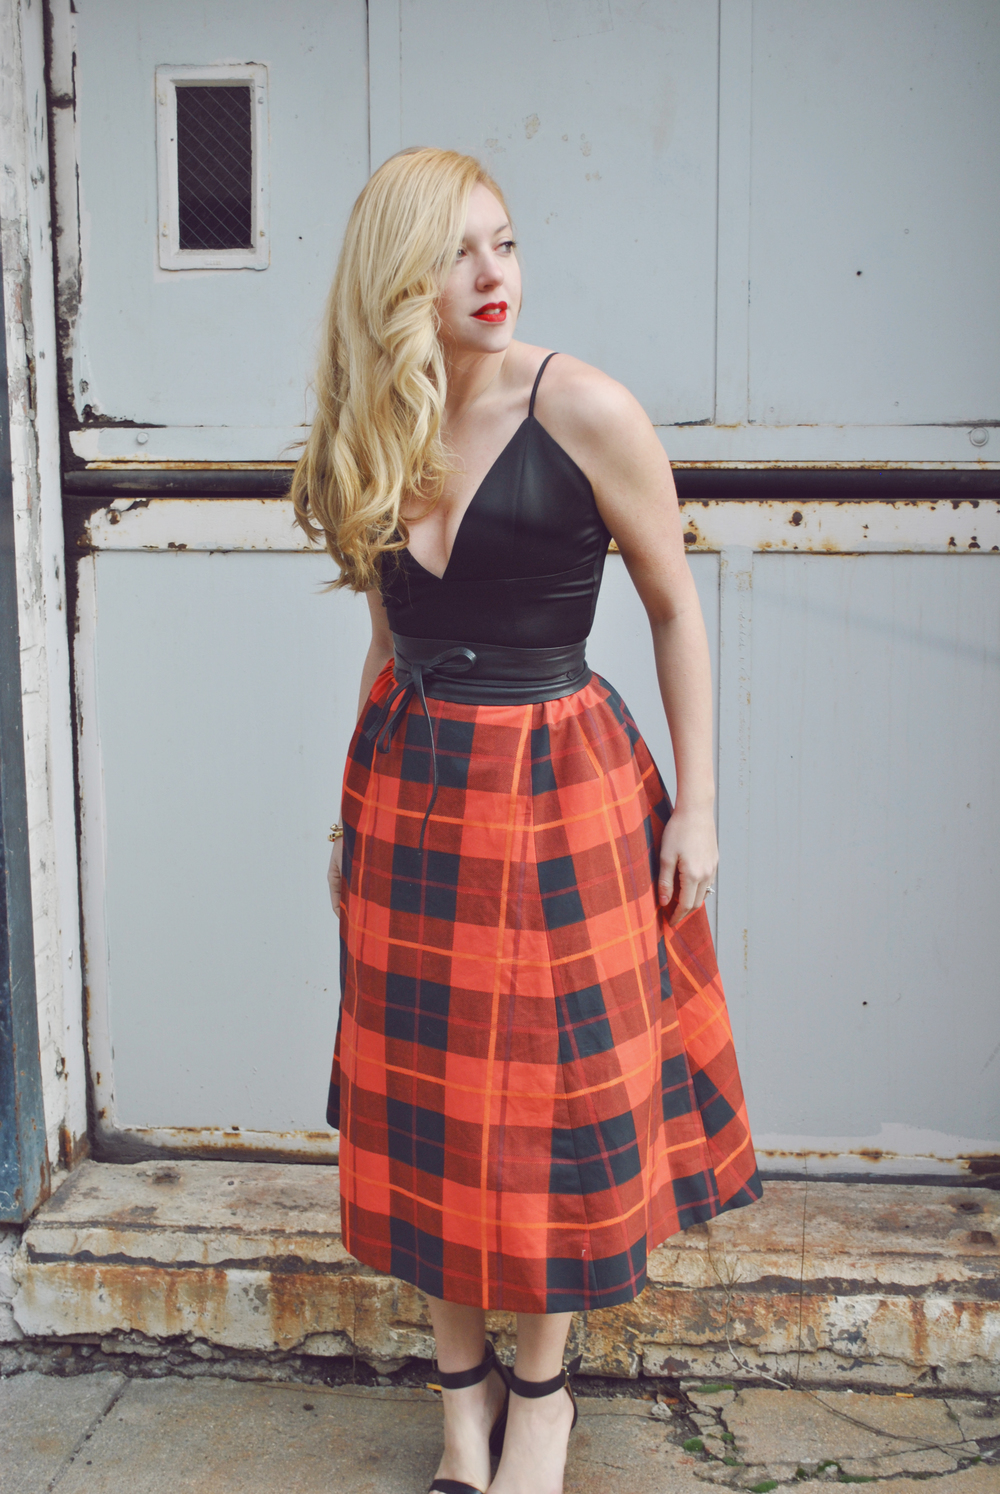 thoughtfulwish | meredith wish // boston // boston blogger // fashion blogger // plaid // valentine's day outfit // valentine's day look // red lip // #ootd // kate spade